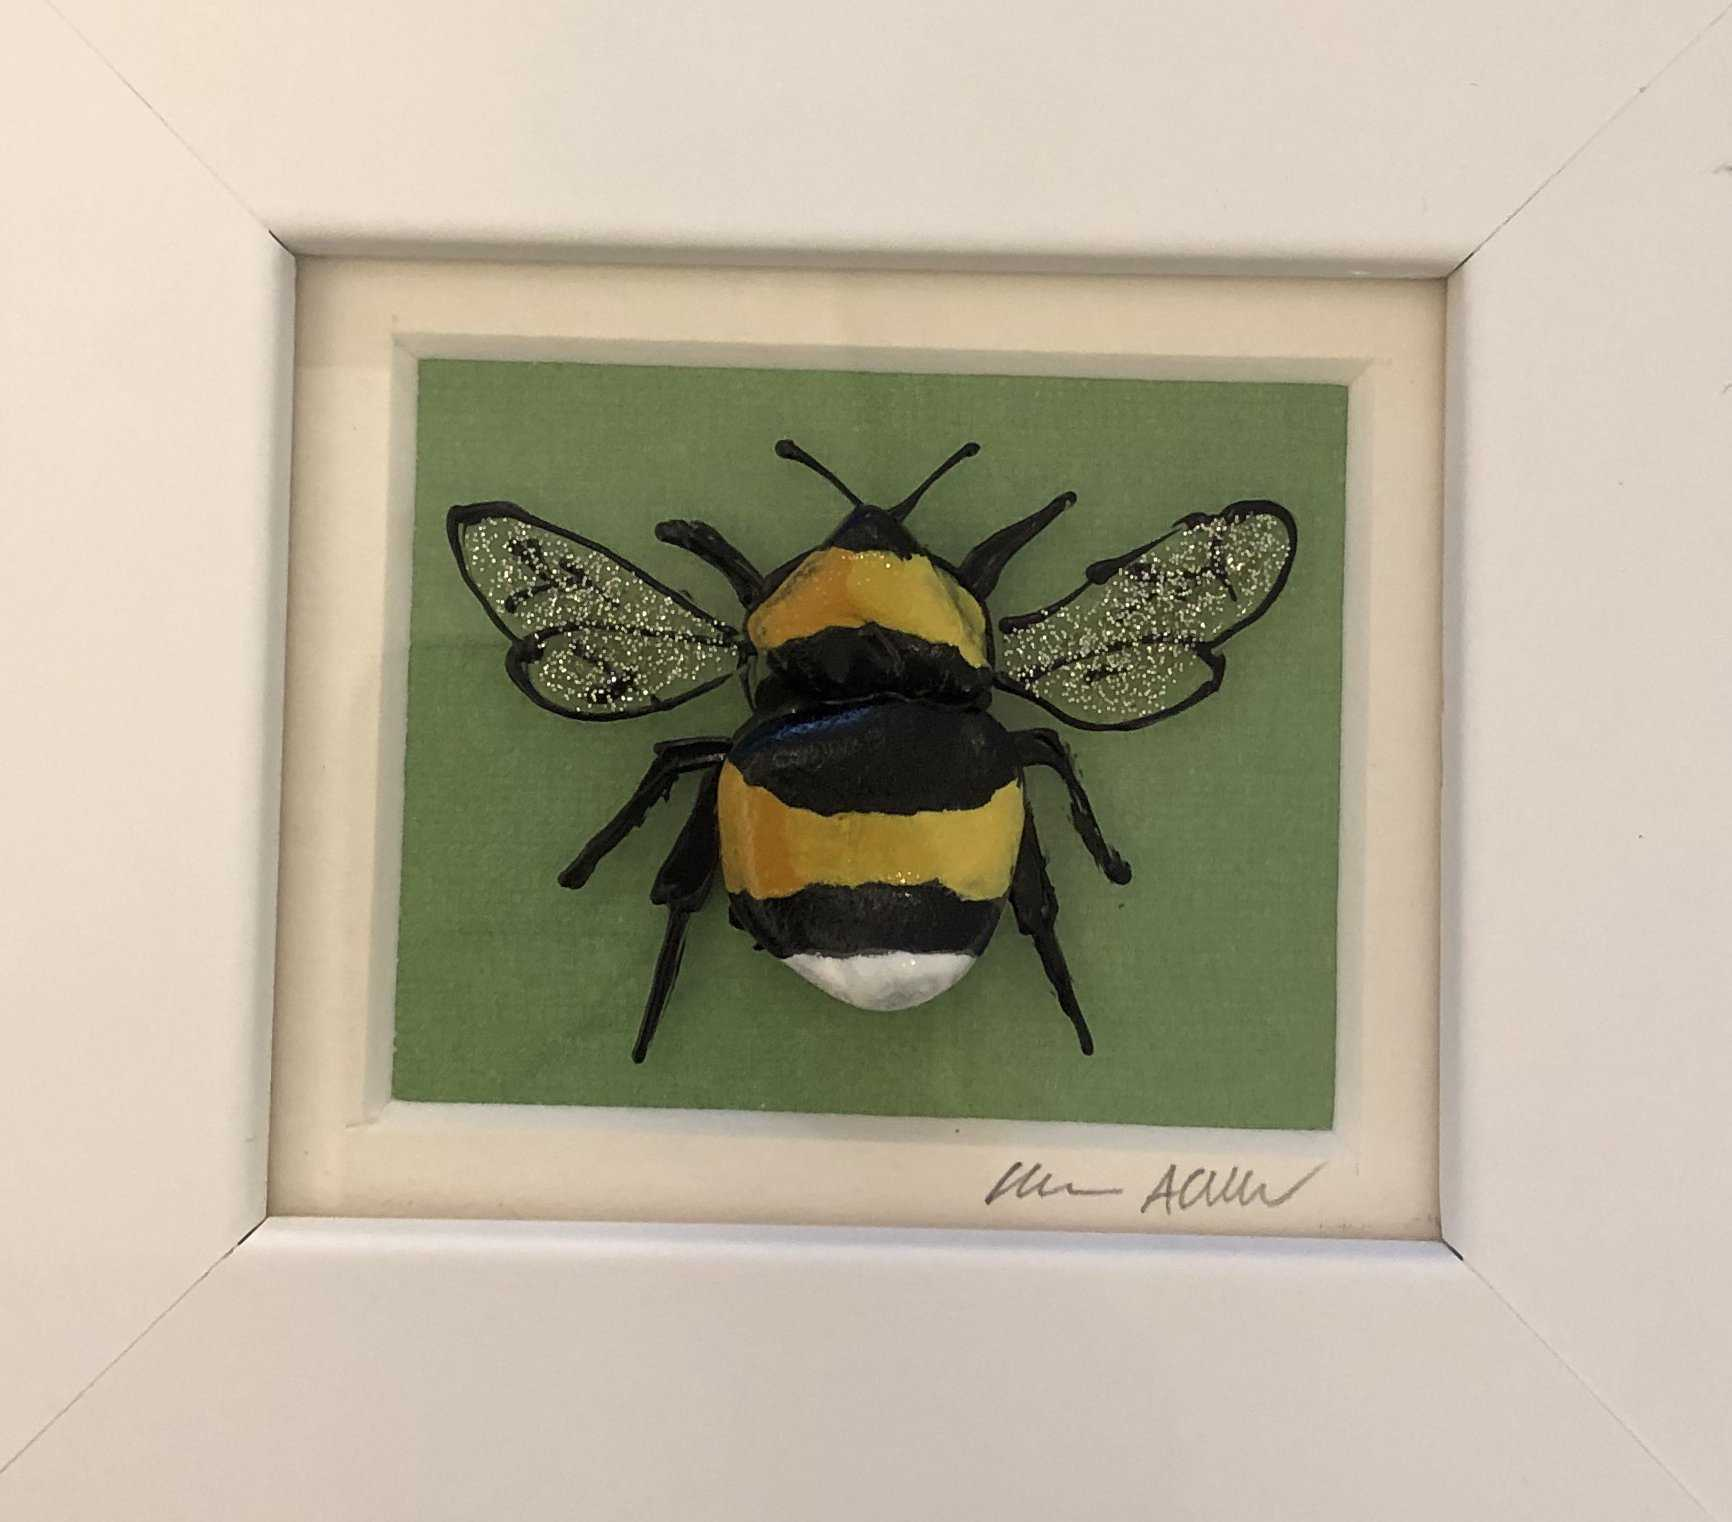 Small Green Bee Art Title - Online Art Shop Brighton, UK